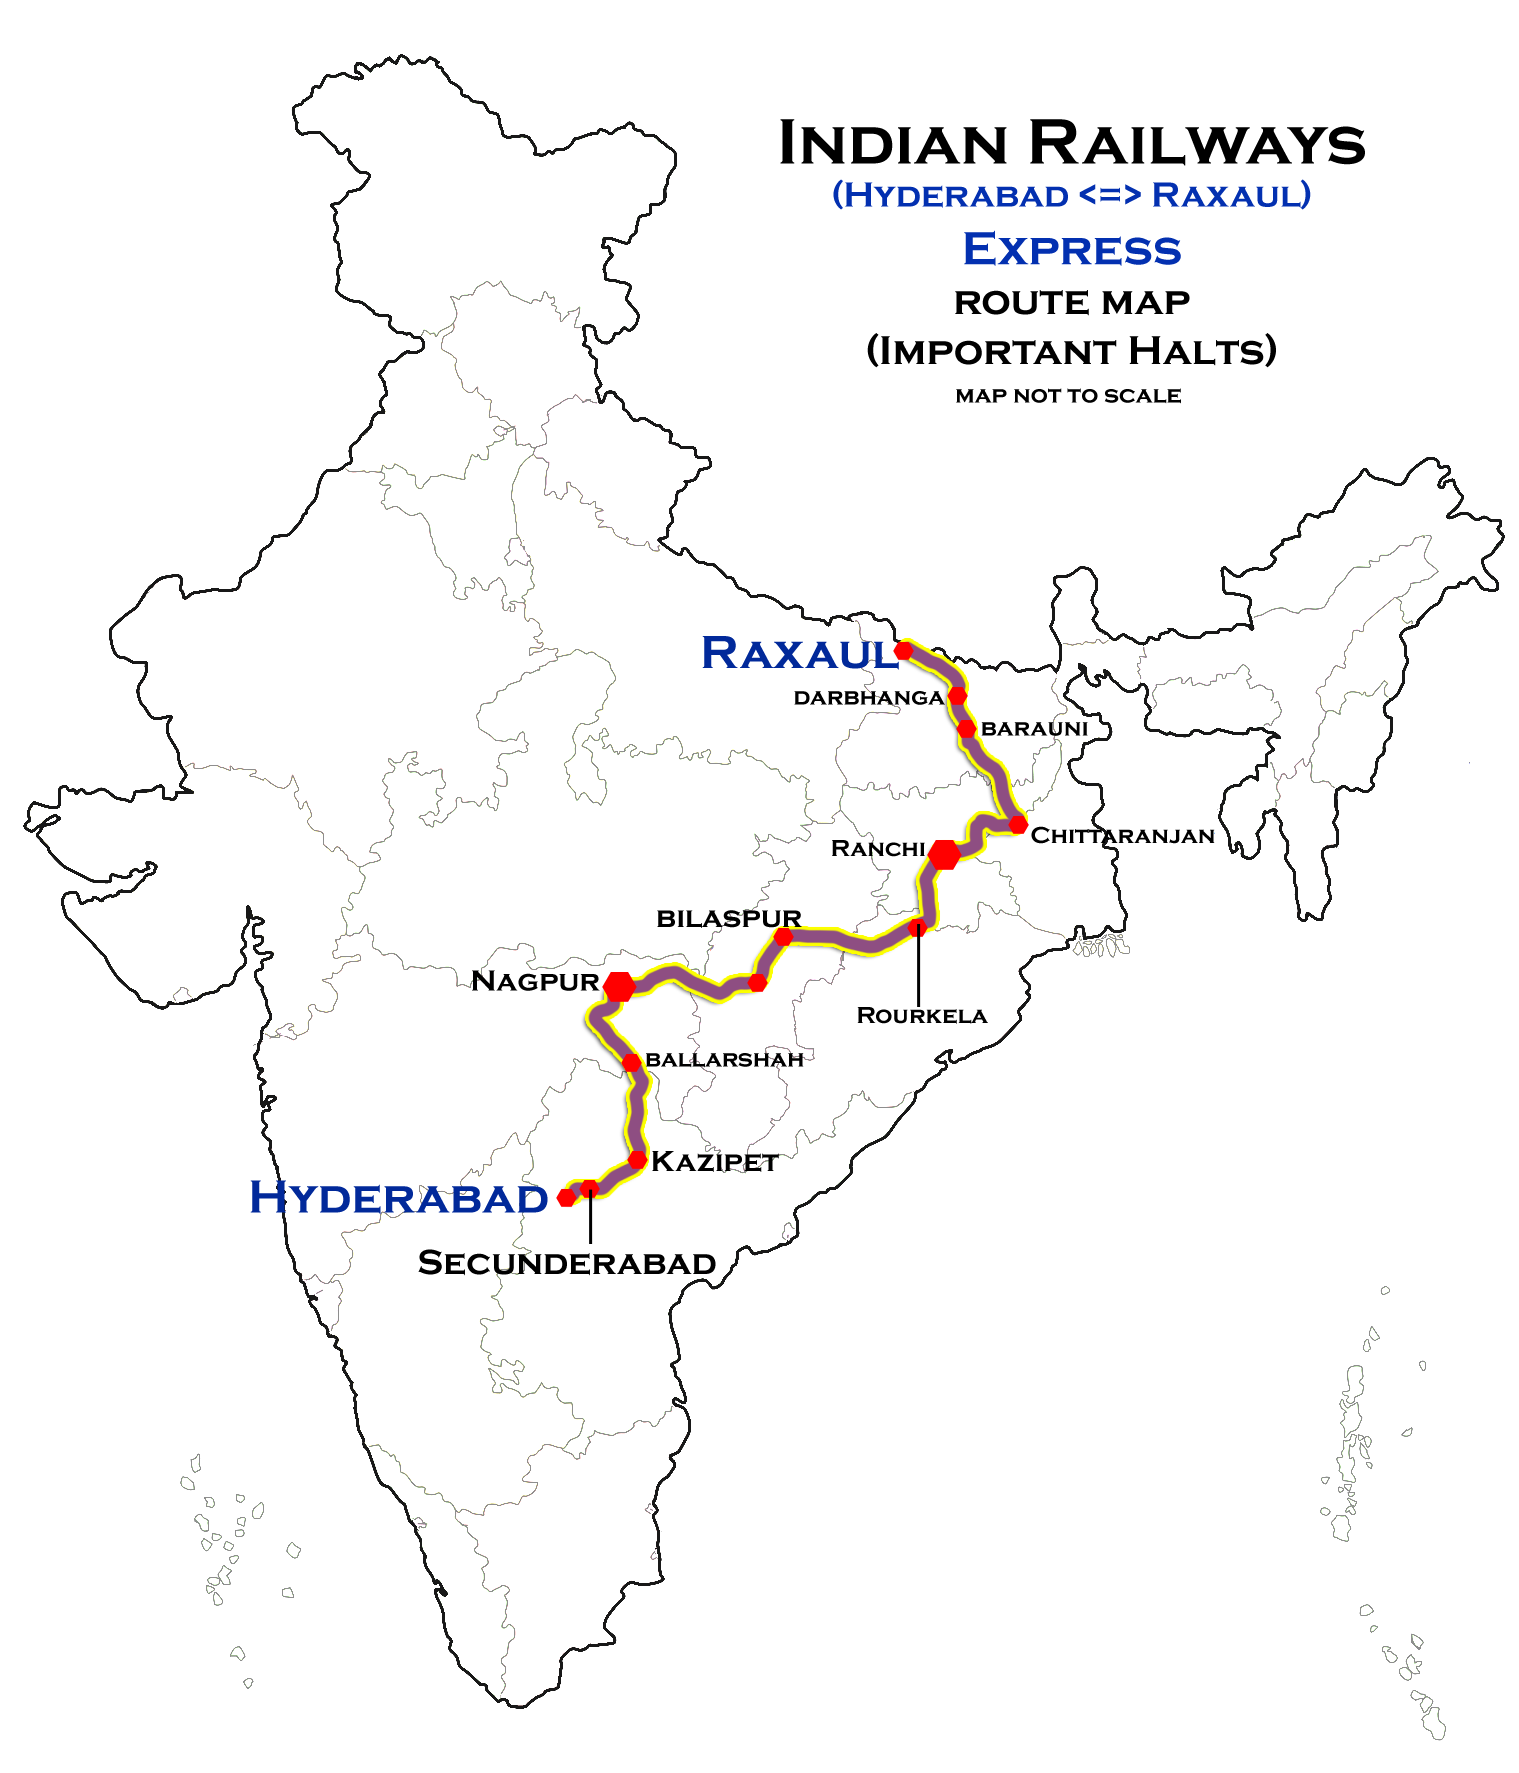 Hyderabad On India Map.File Hyderabad Raxaul Express Route Map Png Wikimedia Commons